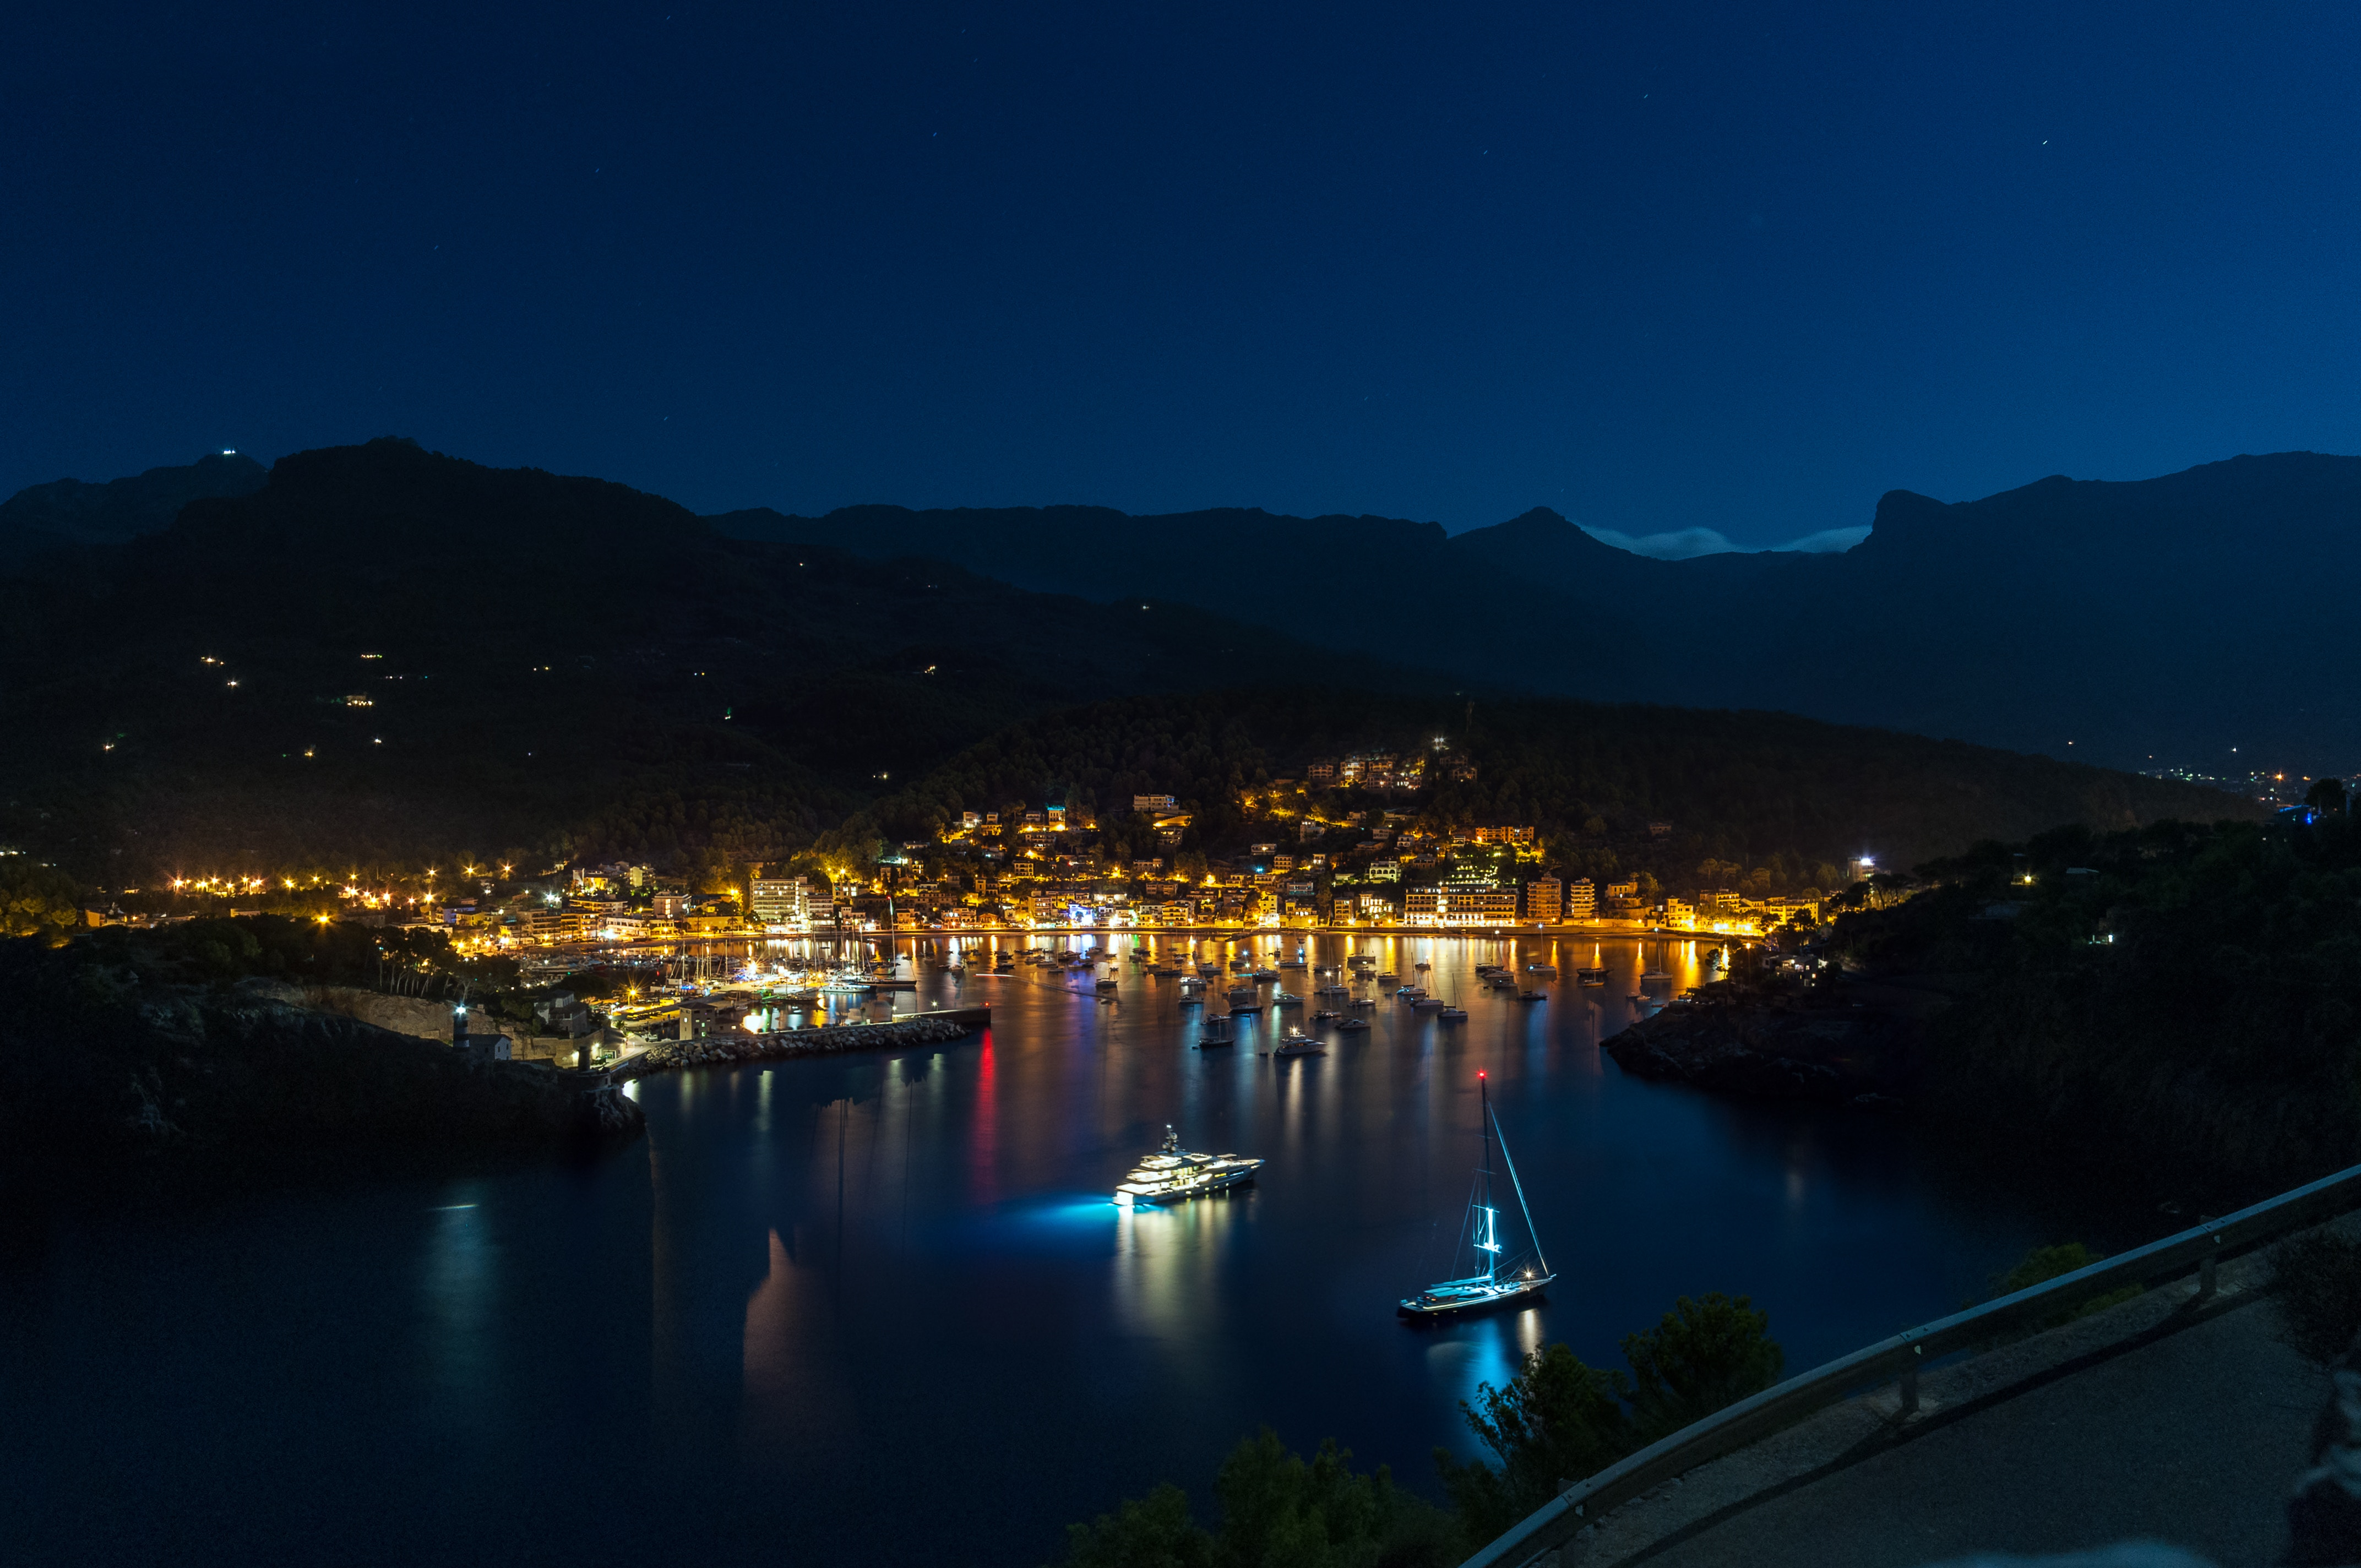 148114 free wallpaper 480x800 for phone, download images Cities, Night, Shore, Bank, Spain, Majorca 480x800 for mobile